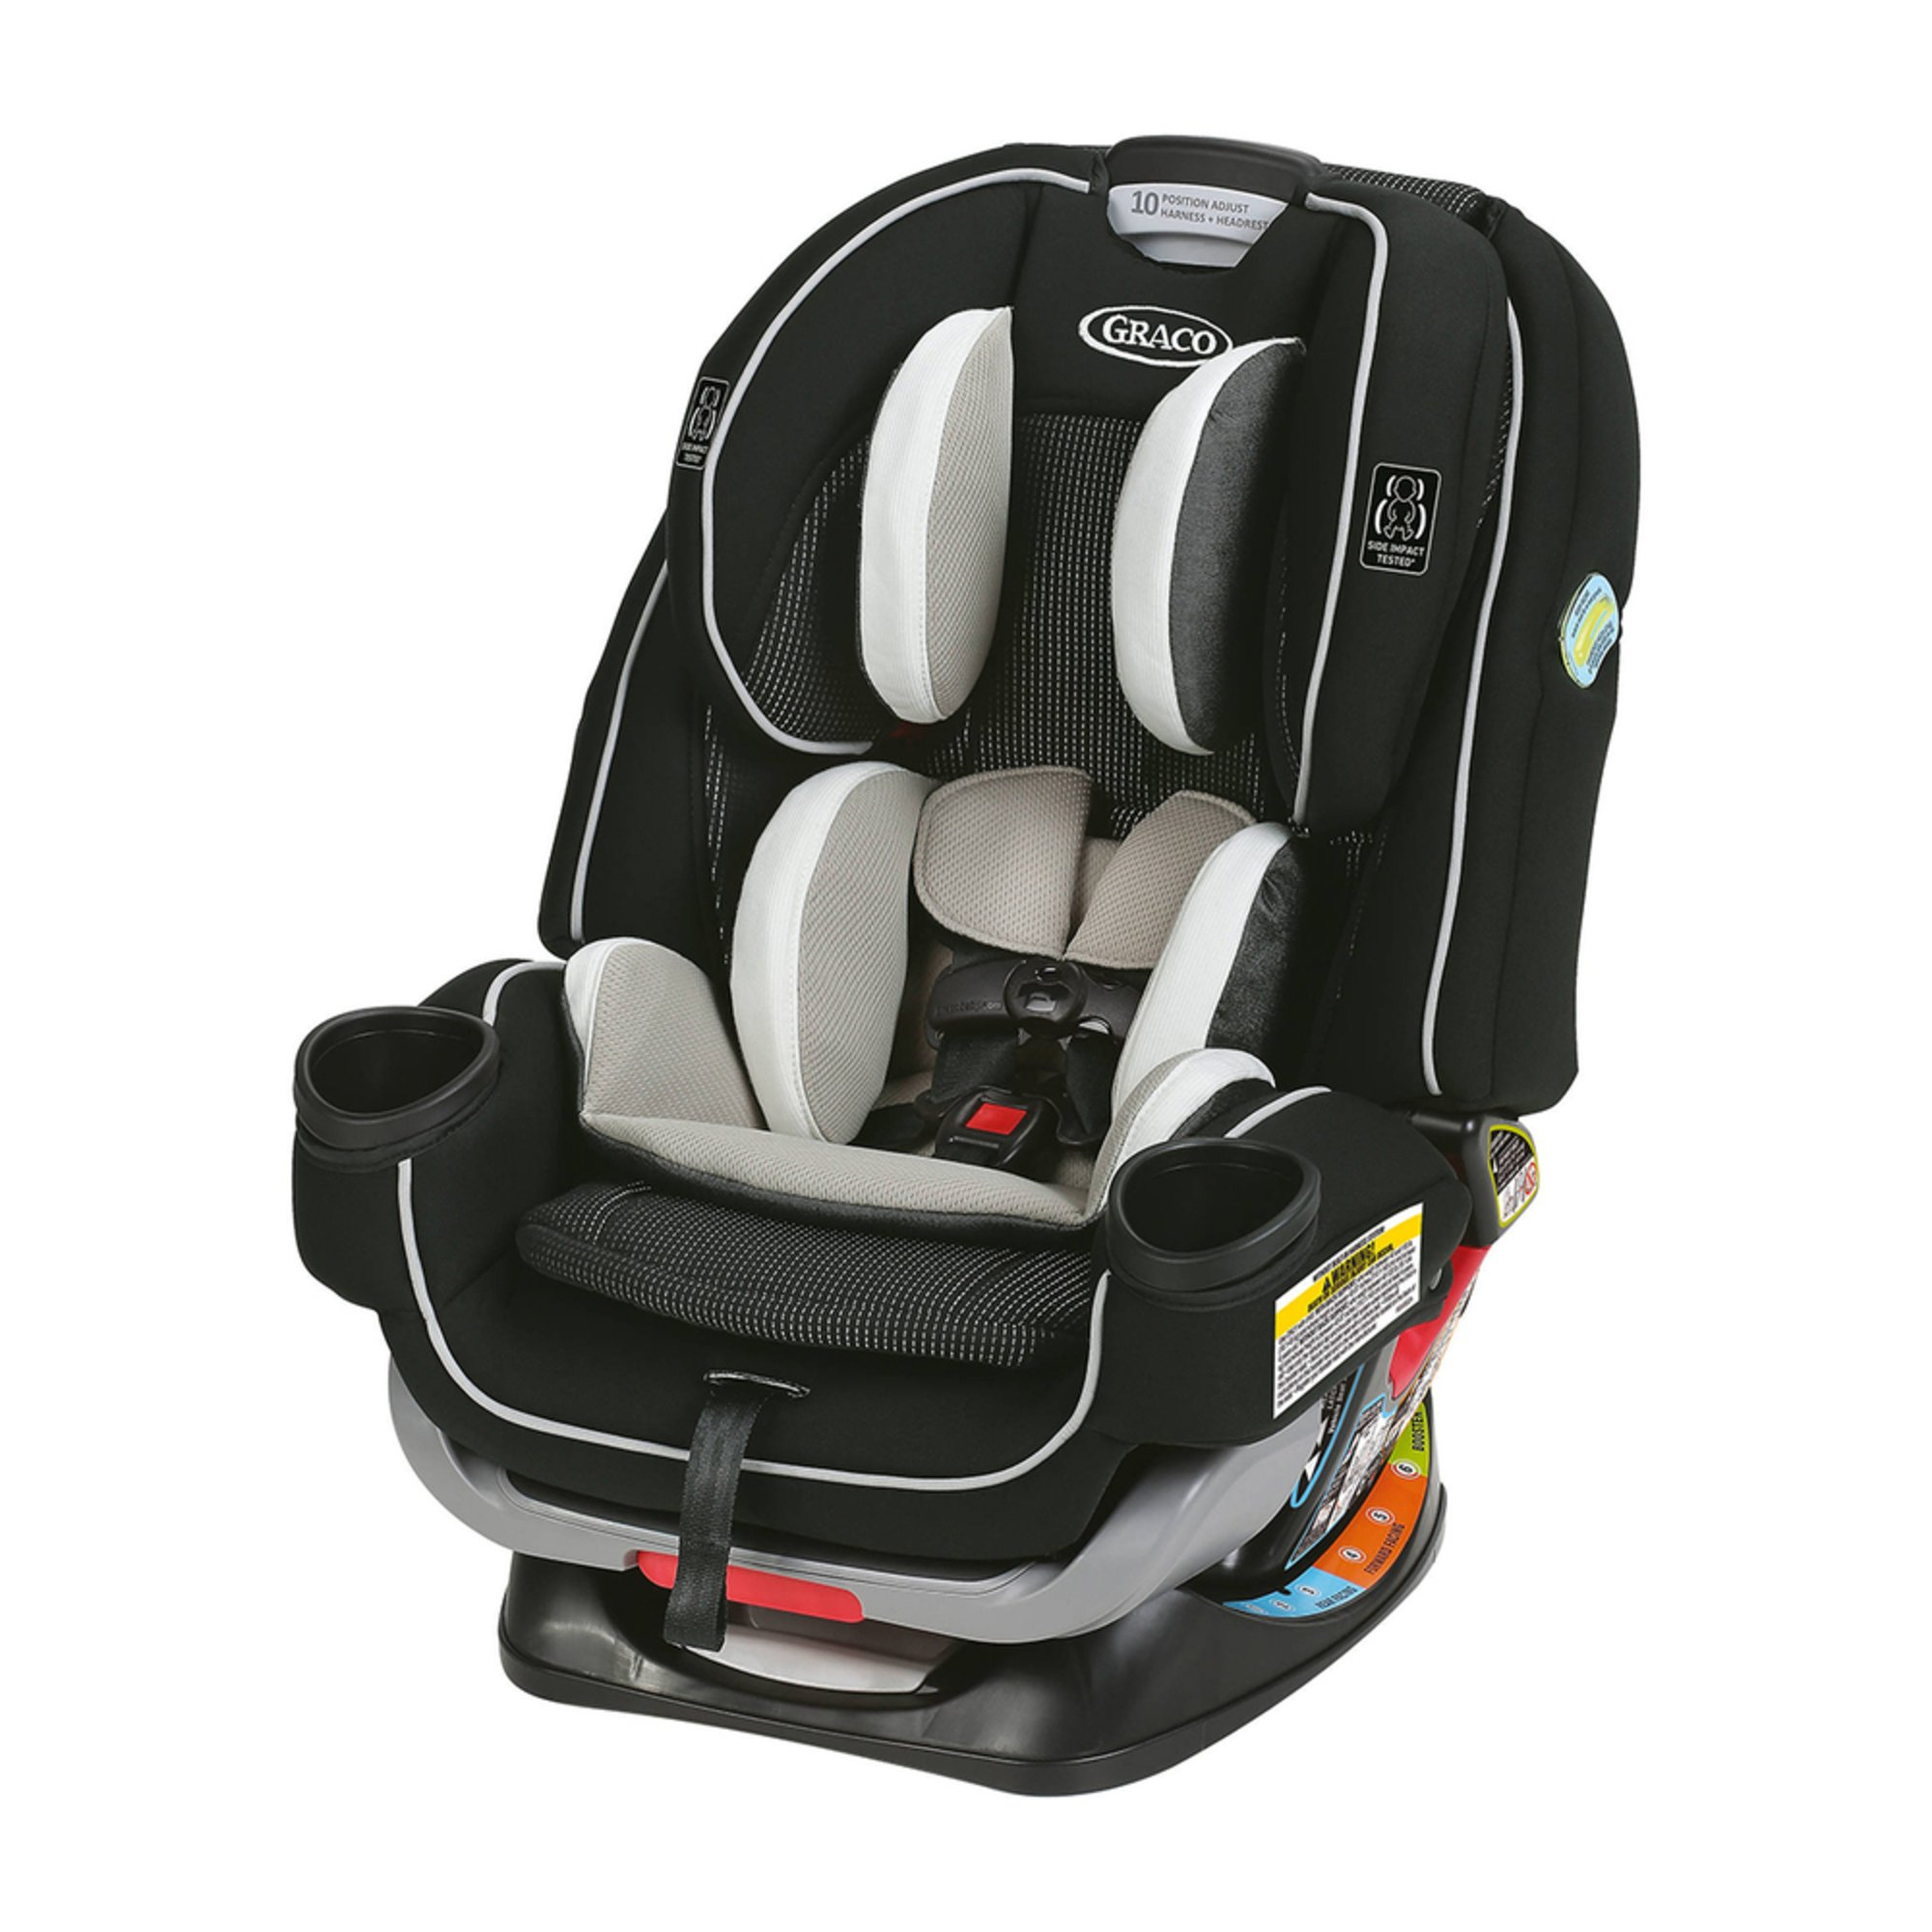 graco 4ever all in one car seat with extend2fit clove convertible car seats baby kids. Black Bedroom Furniture Sets. Home Design Ideas